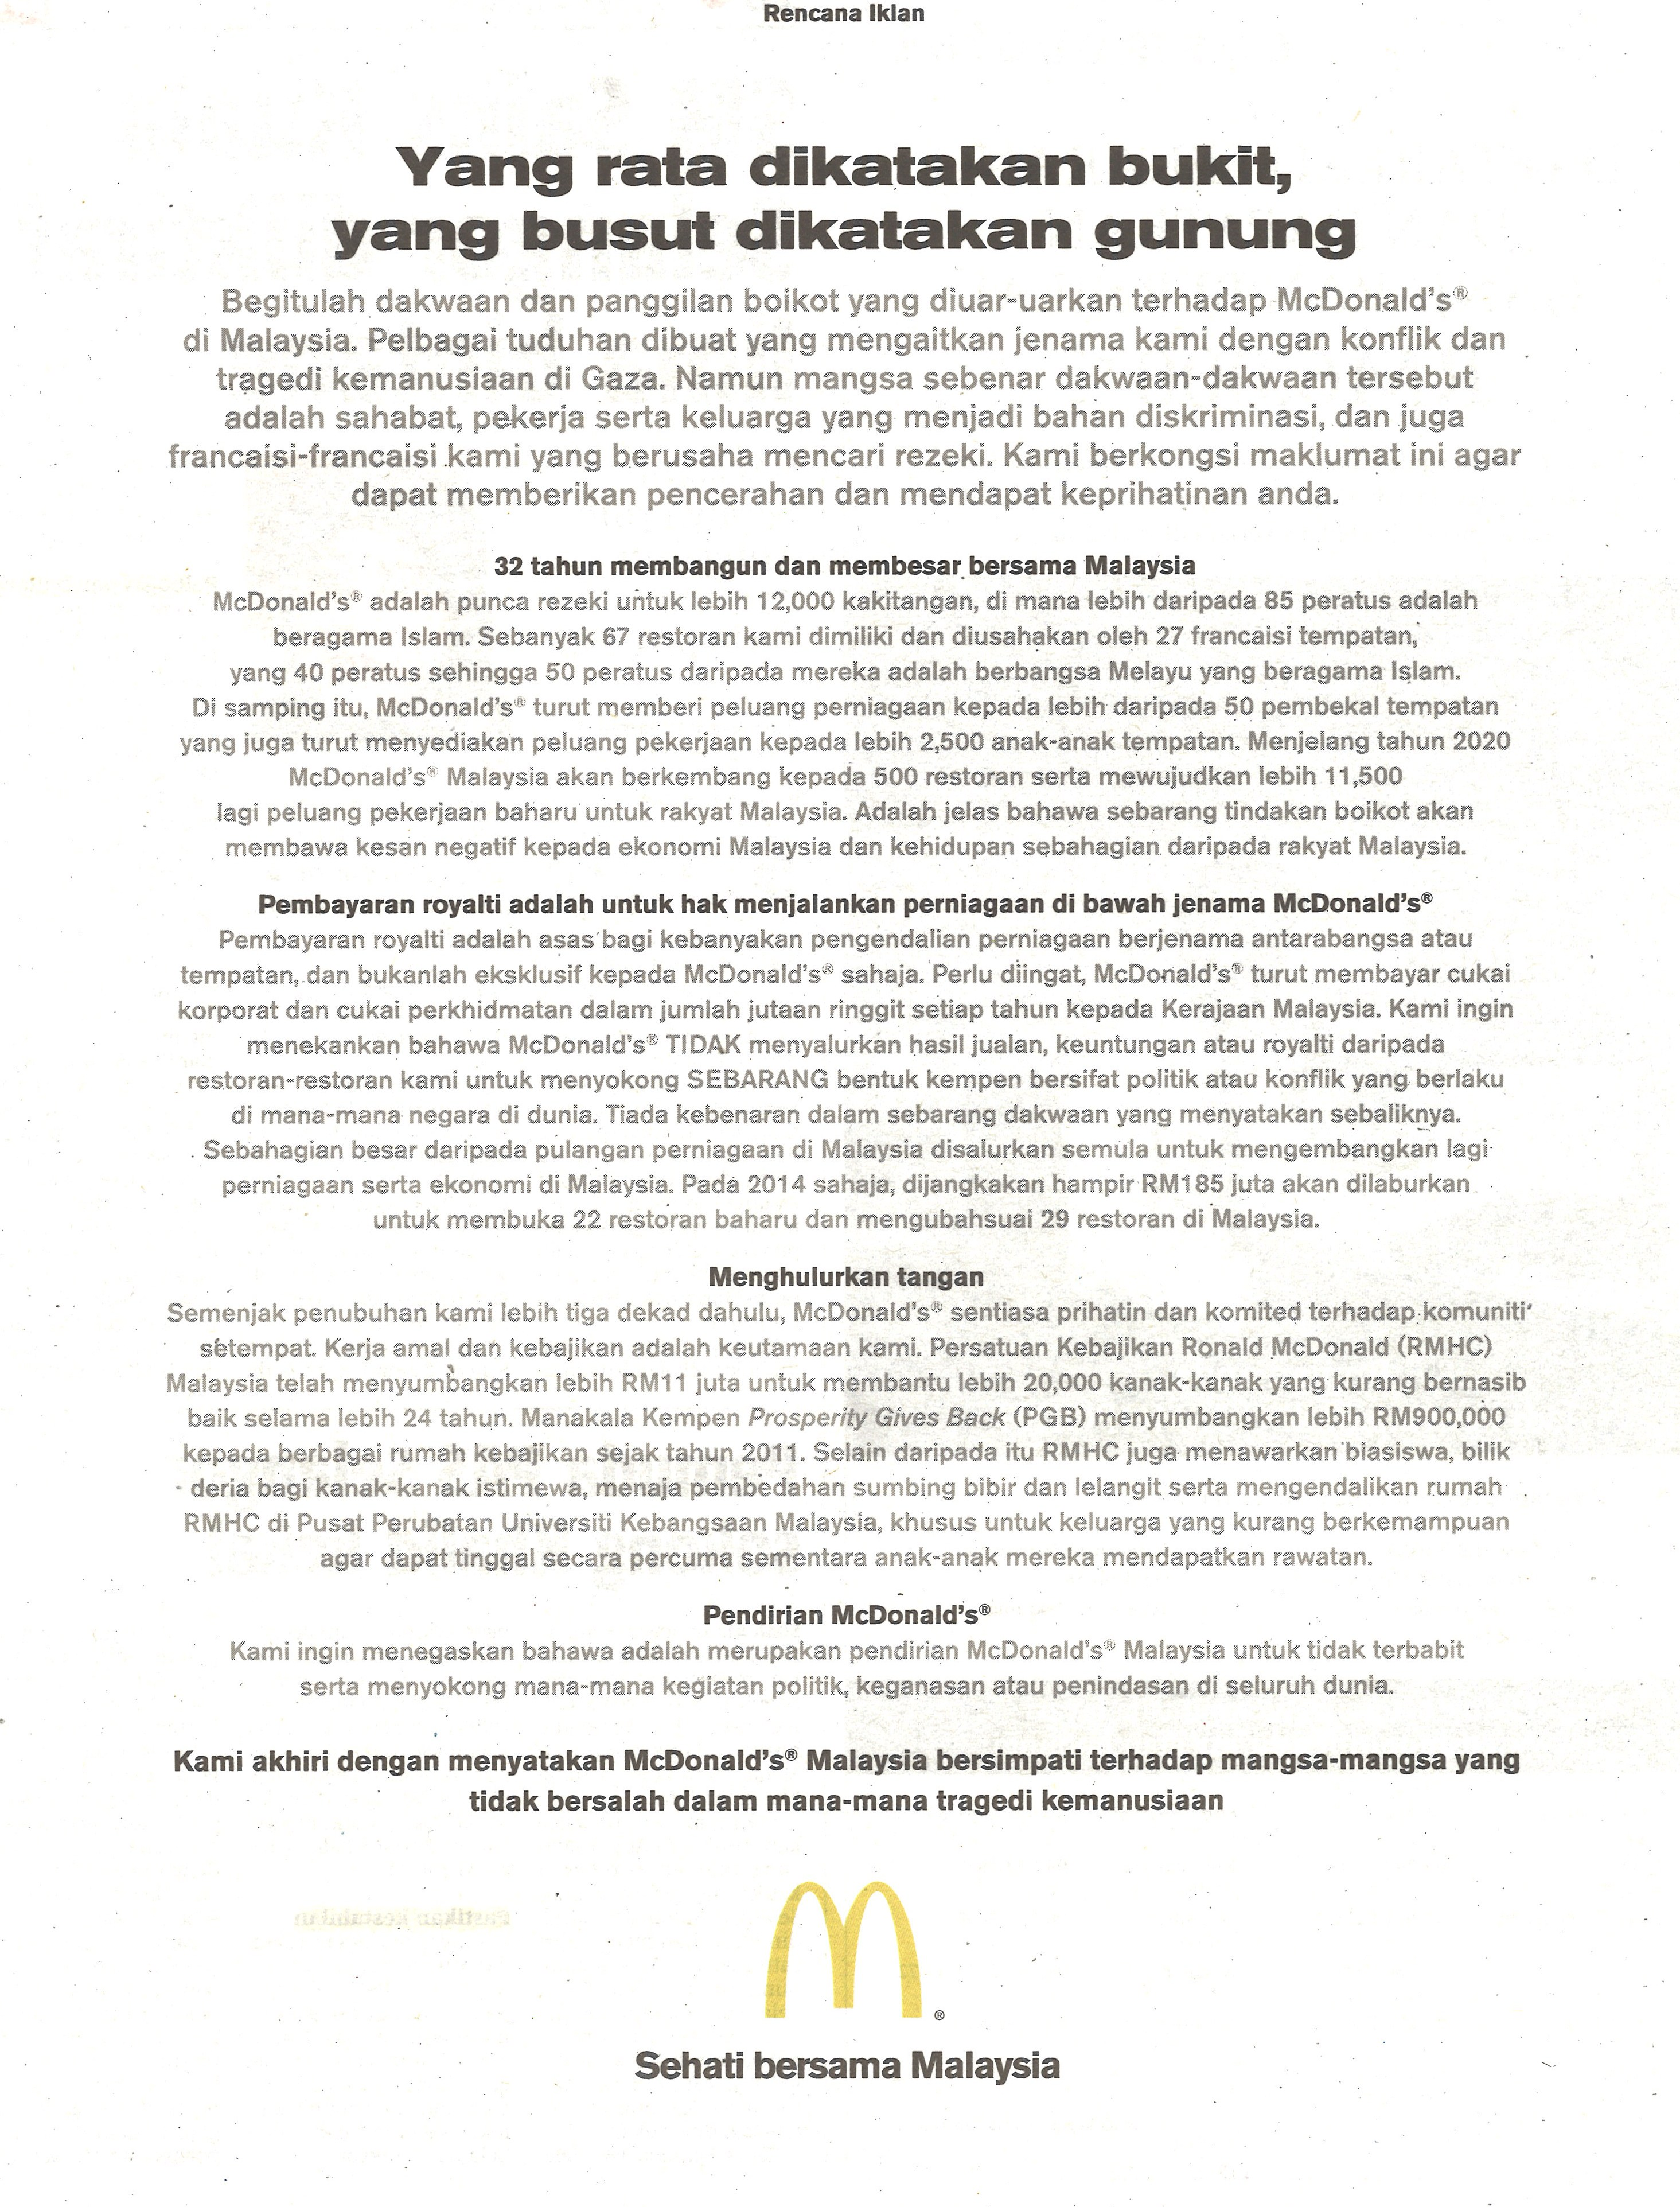 mcdonalds video advertisement essay Mcdonald's also noted that mccafe, which they labeled as a long-term home run, had met sales expectations and has benefited from the high level of advertising that mcdonald's has committed to it coffee sales now make up 5% of mcdonald's total sales.